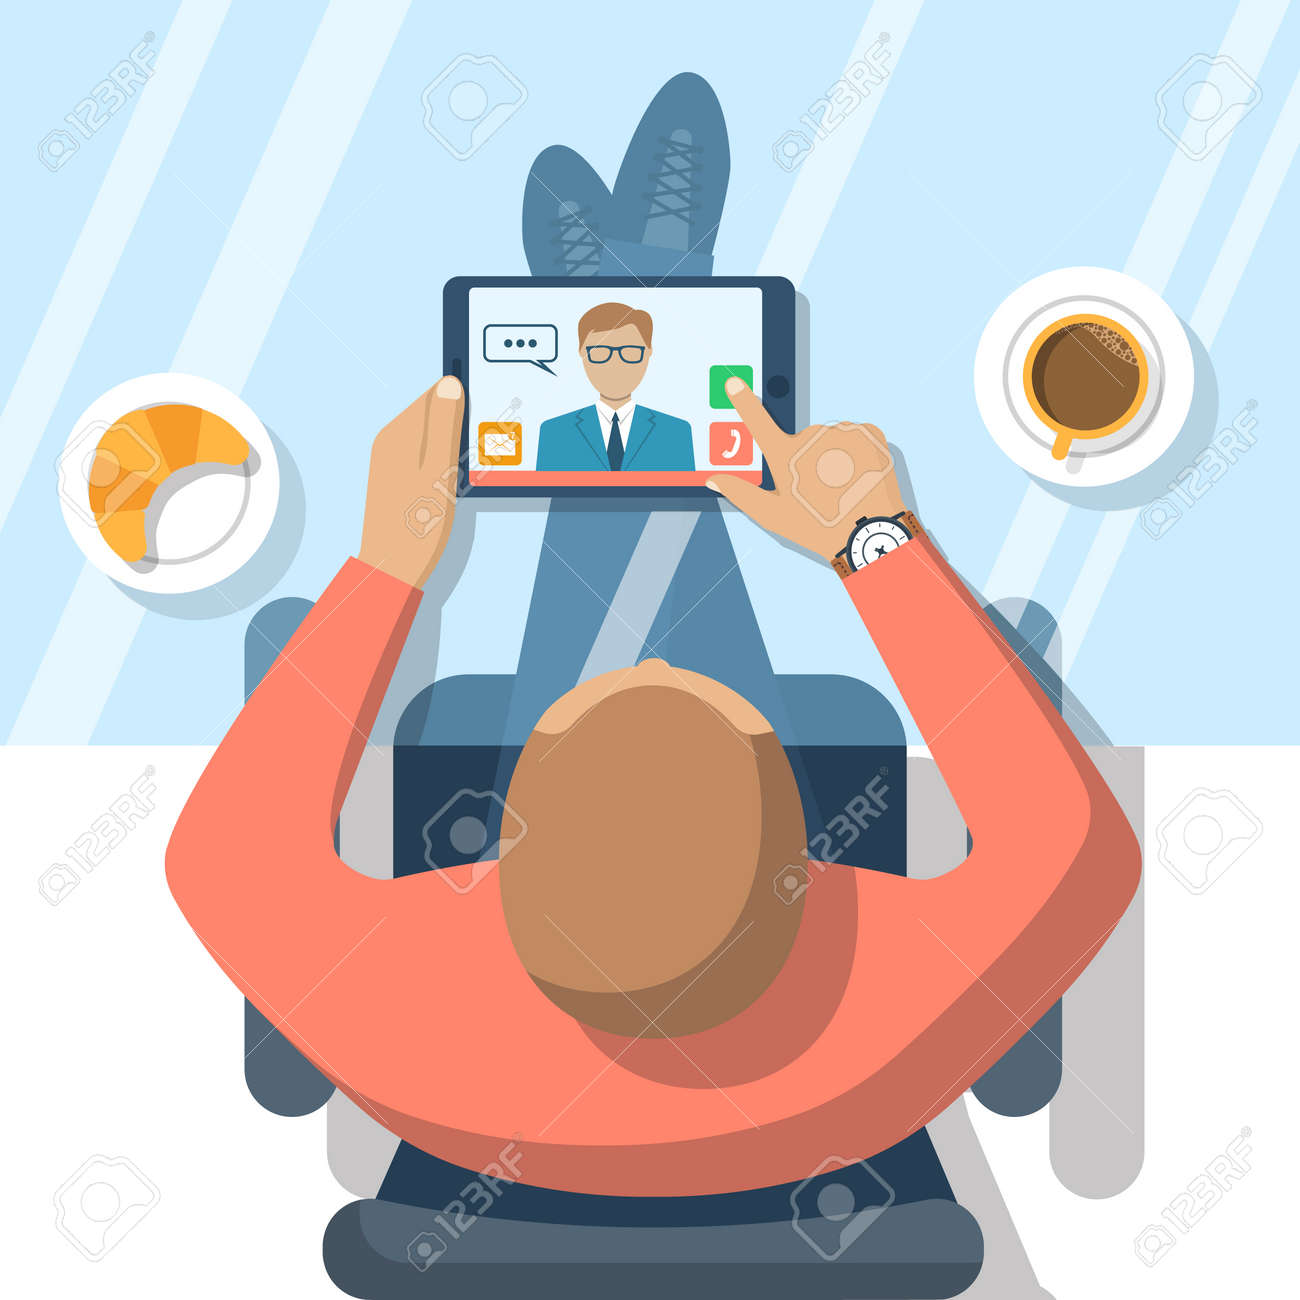 Video chat concept. Man sitting at glass table, communicates using video chat on tablet computer. Online chat. Vector illustration flat design. Video conference, meeting. Web chat. - 57972579